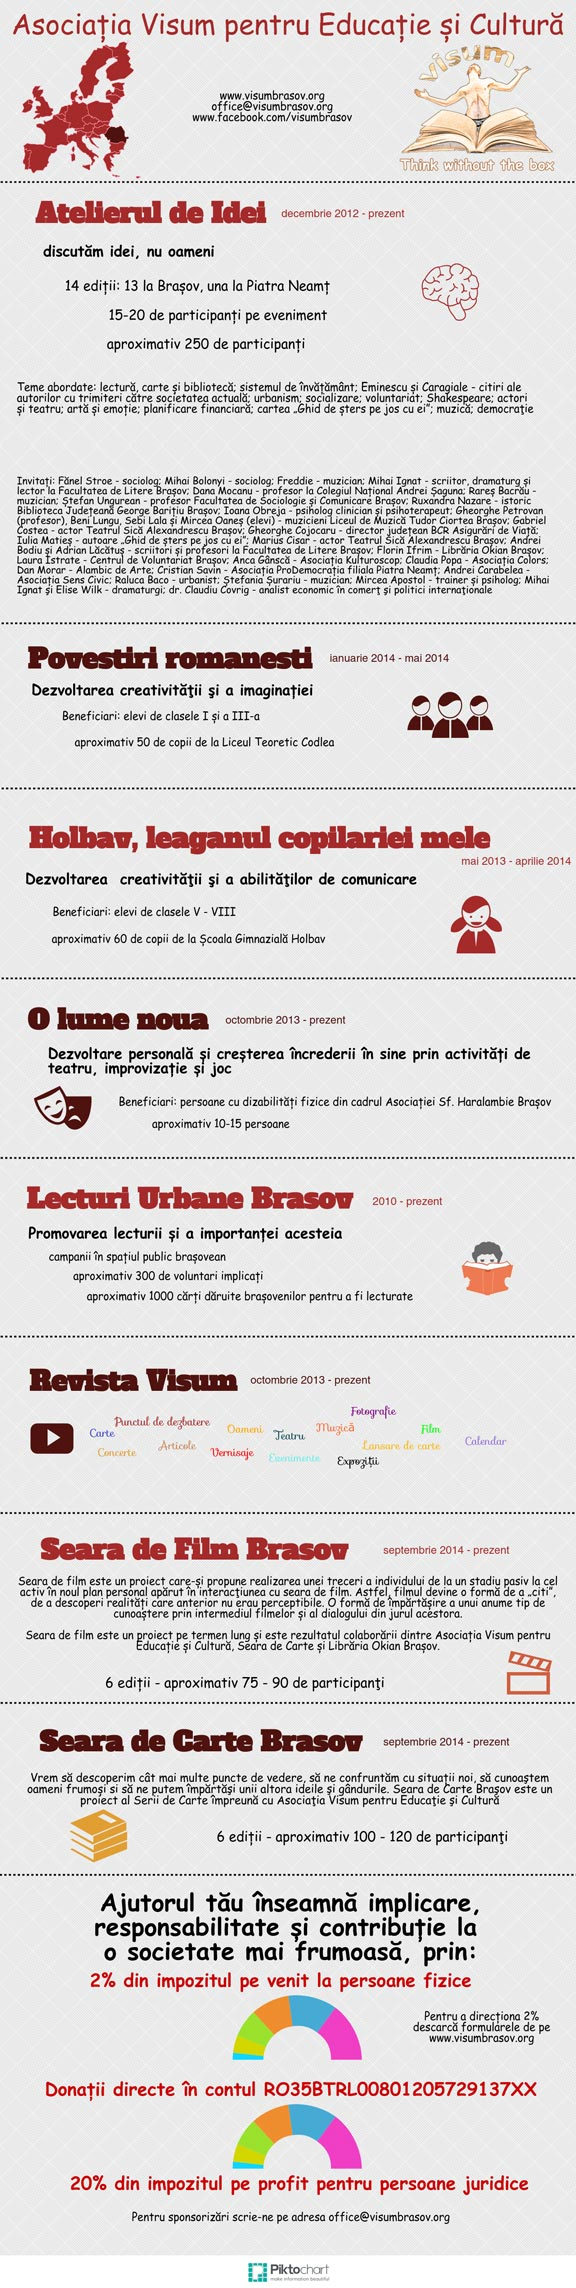 Visum-Infographic-Copy